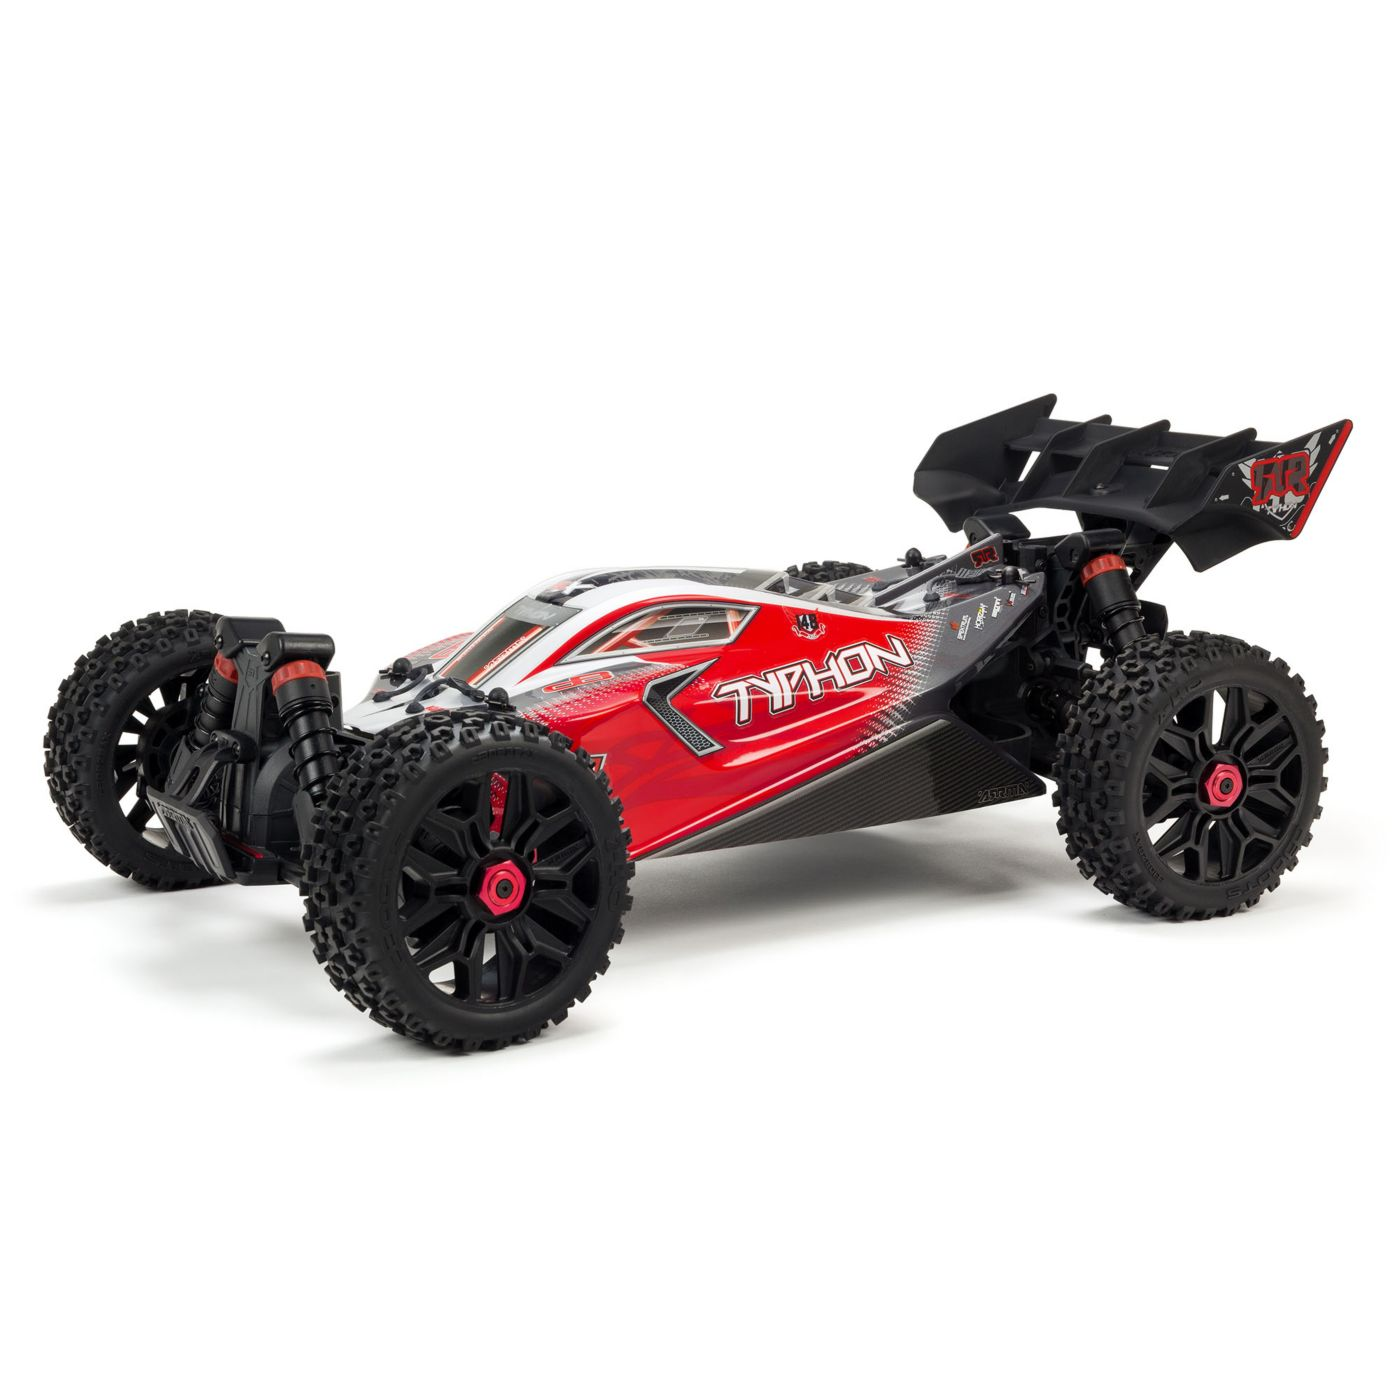 Arrma Typhon 3s Brushless 4wd Buggy rtr 02